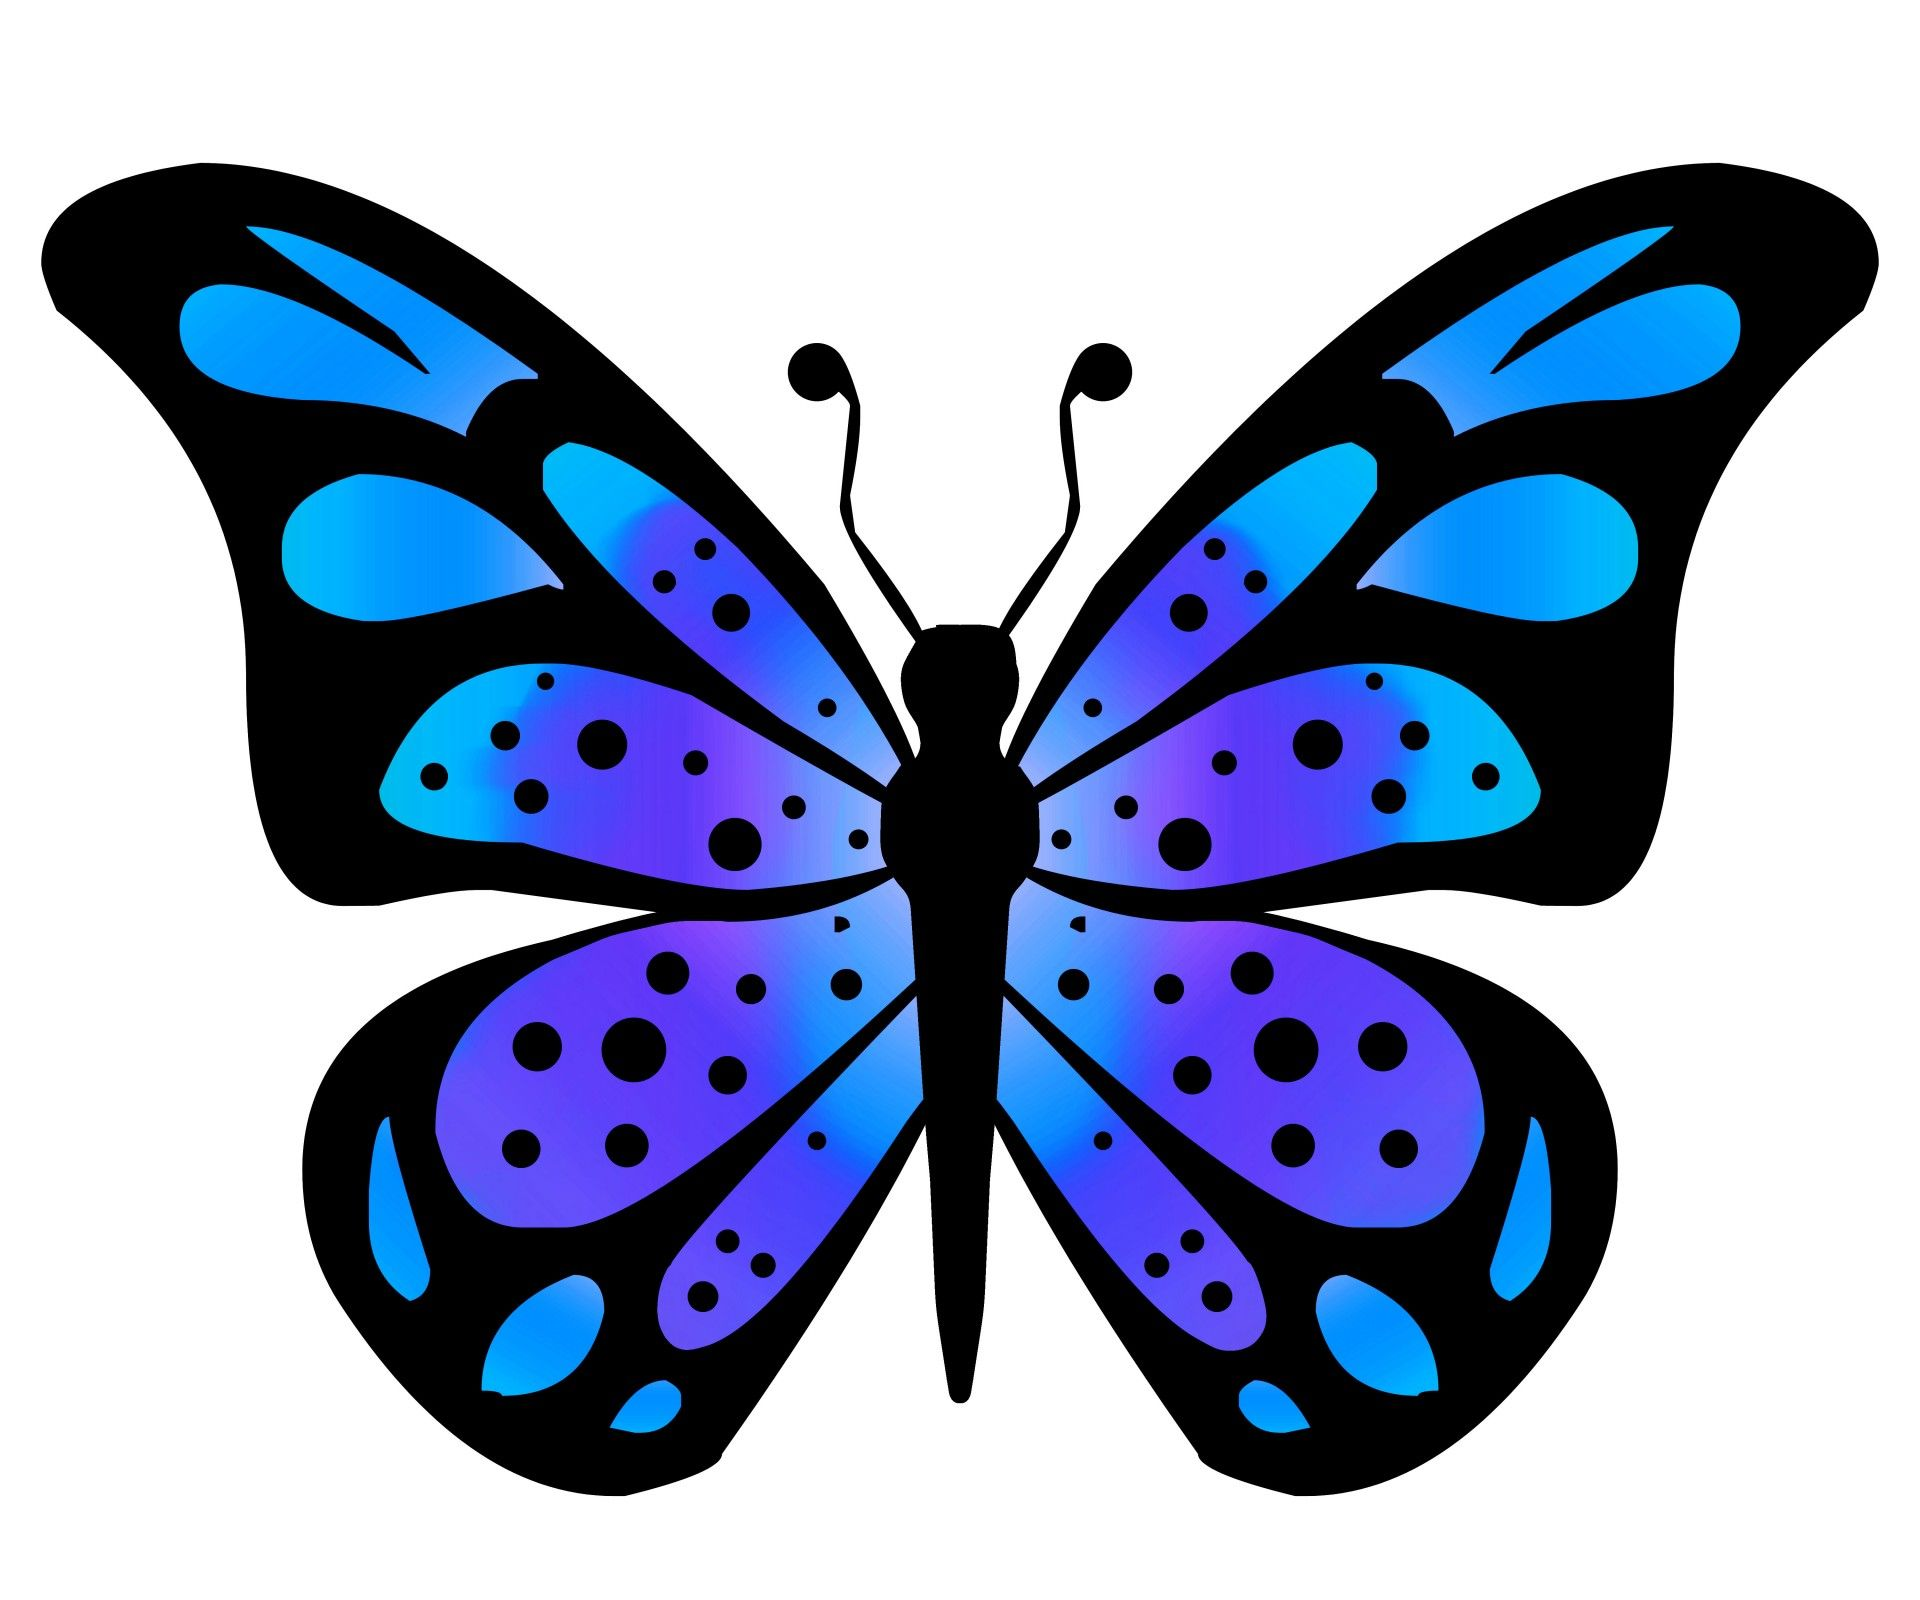 pictures of butterflies clipart at getdrawings com free for rh getdrawings com butterflies clipart small butterfly clipart images